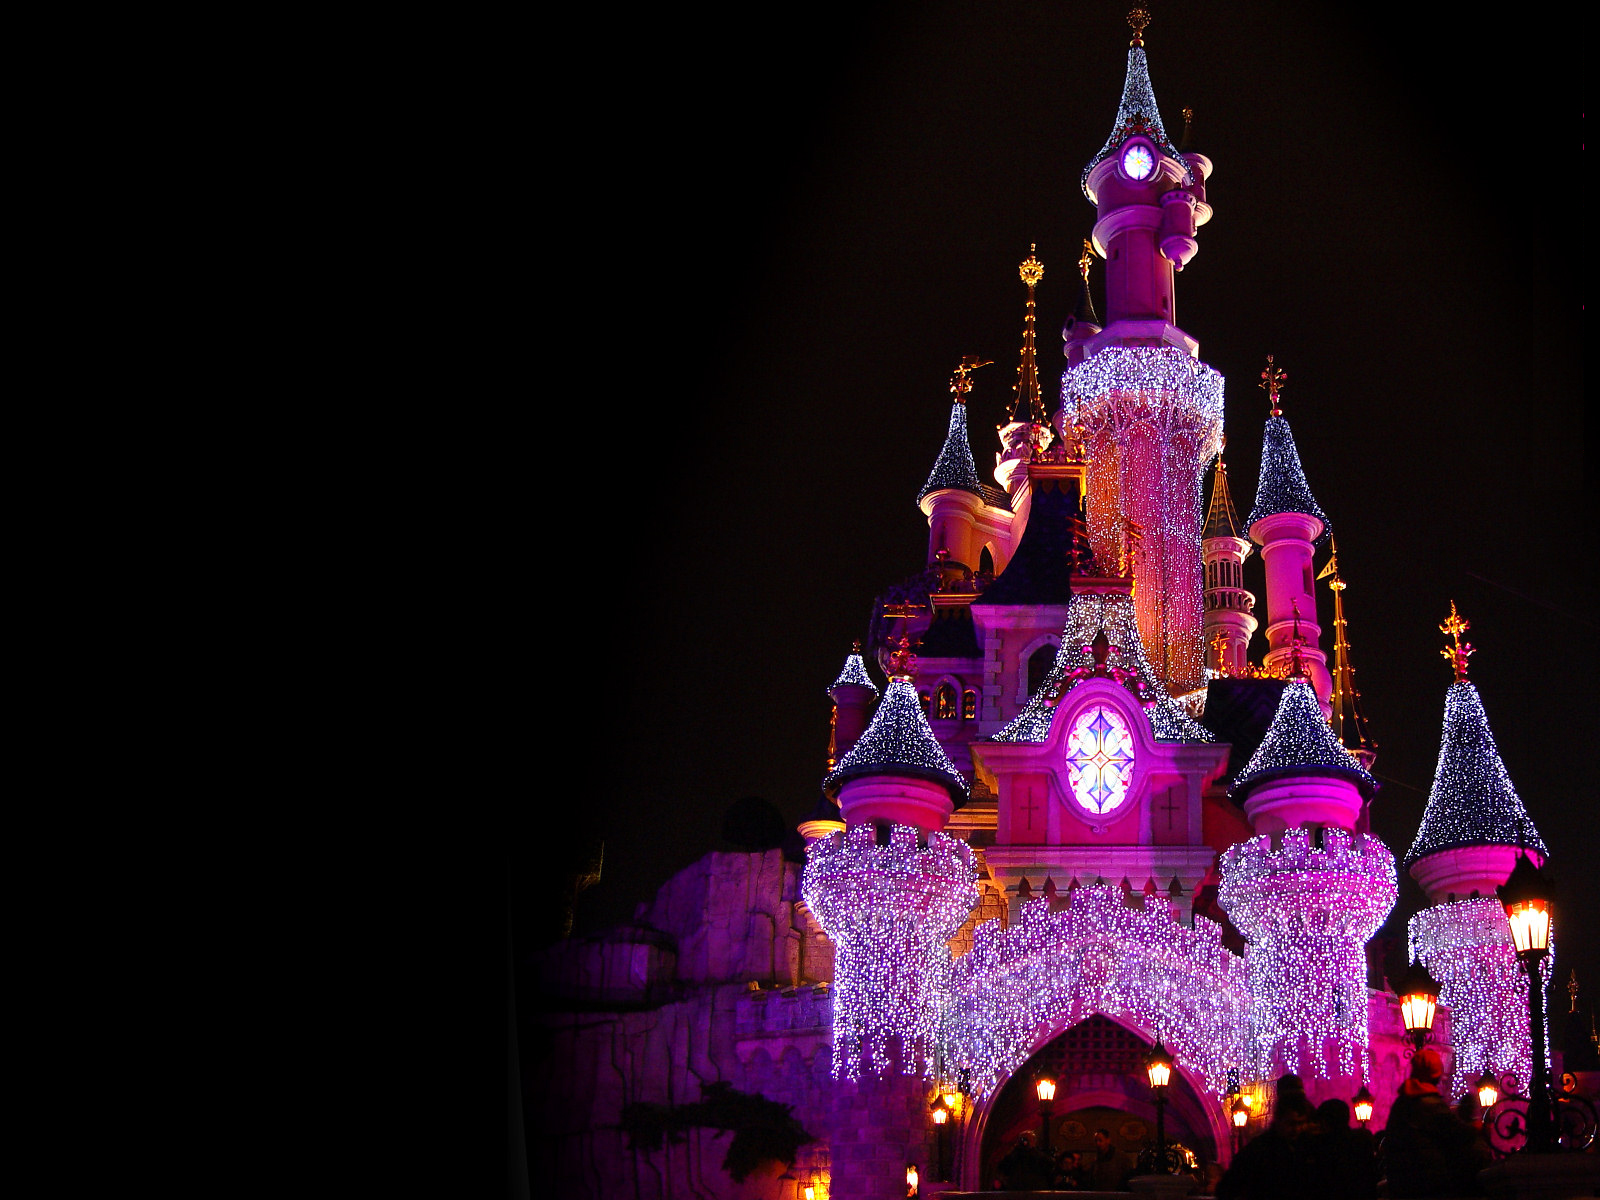 Disney Desktop HD Wallpaper Amazing Wallpapers 1600x1200